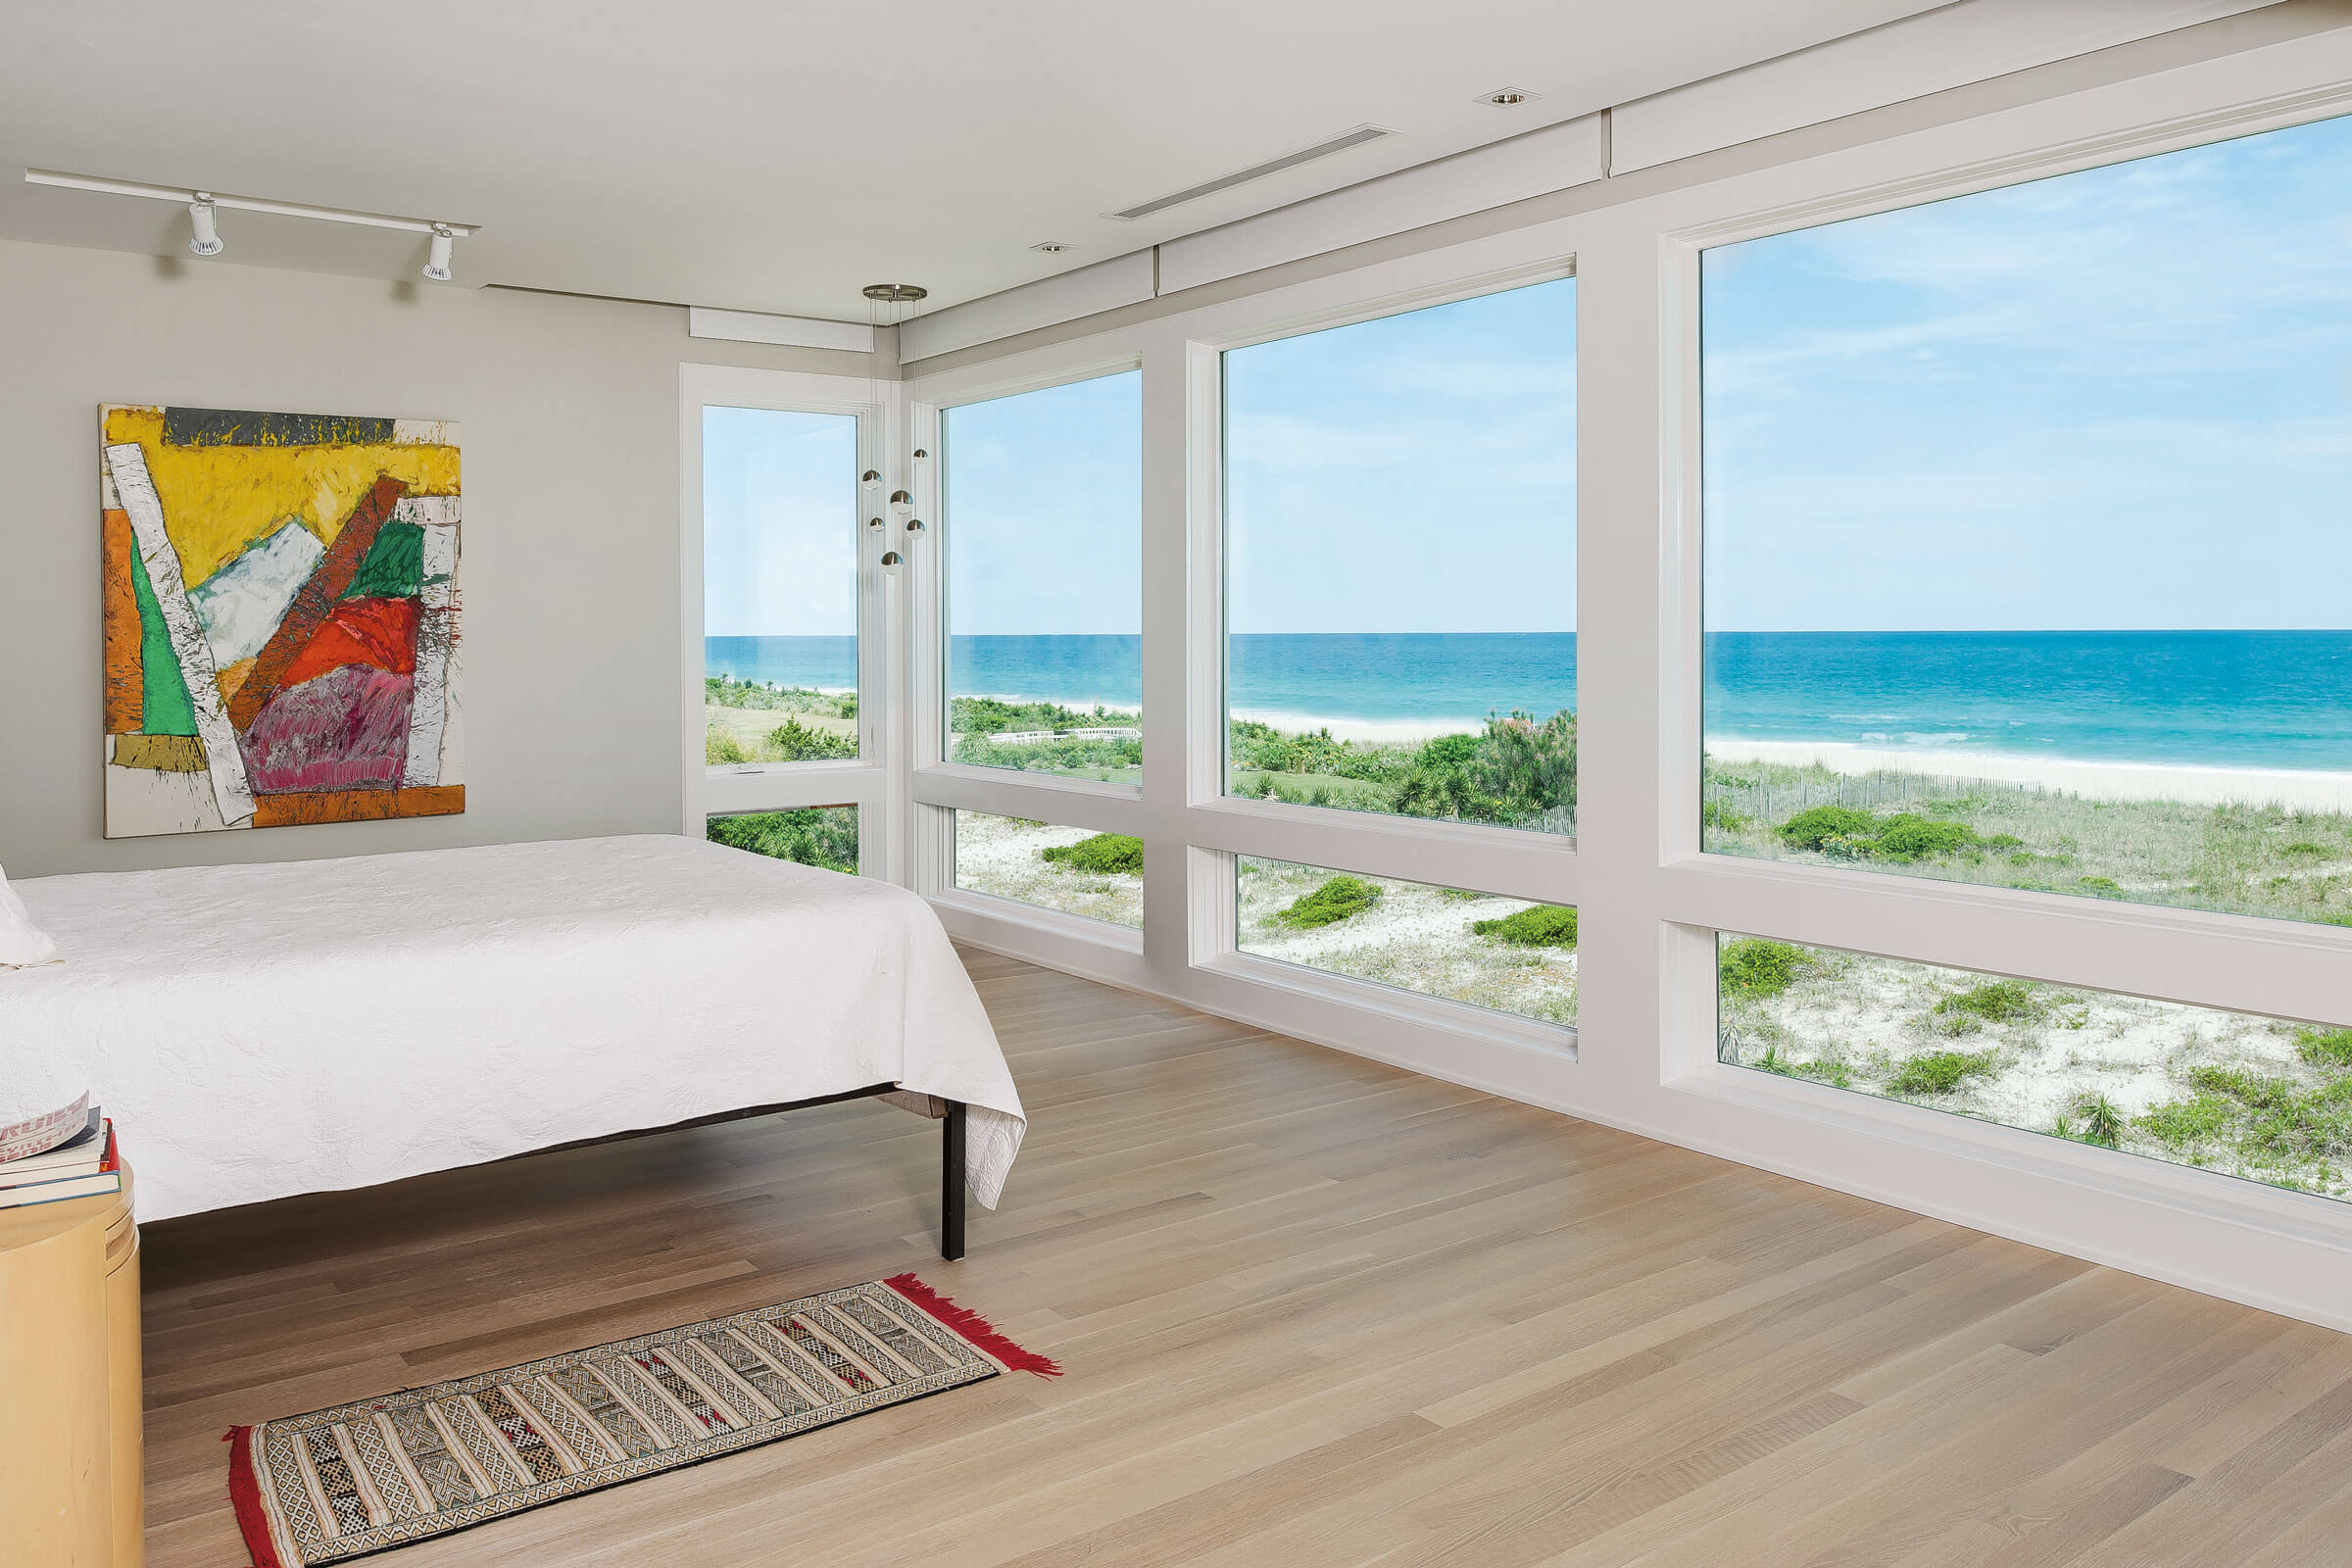 Coastal View From Bedroom With Marvin Elevate Casement Picture Windows